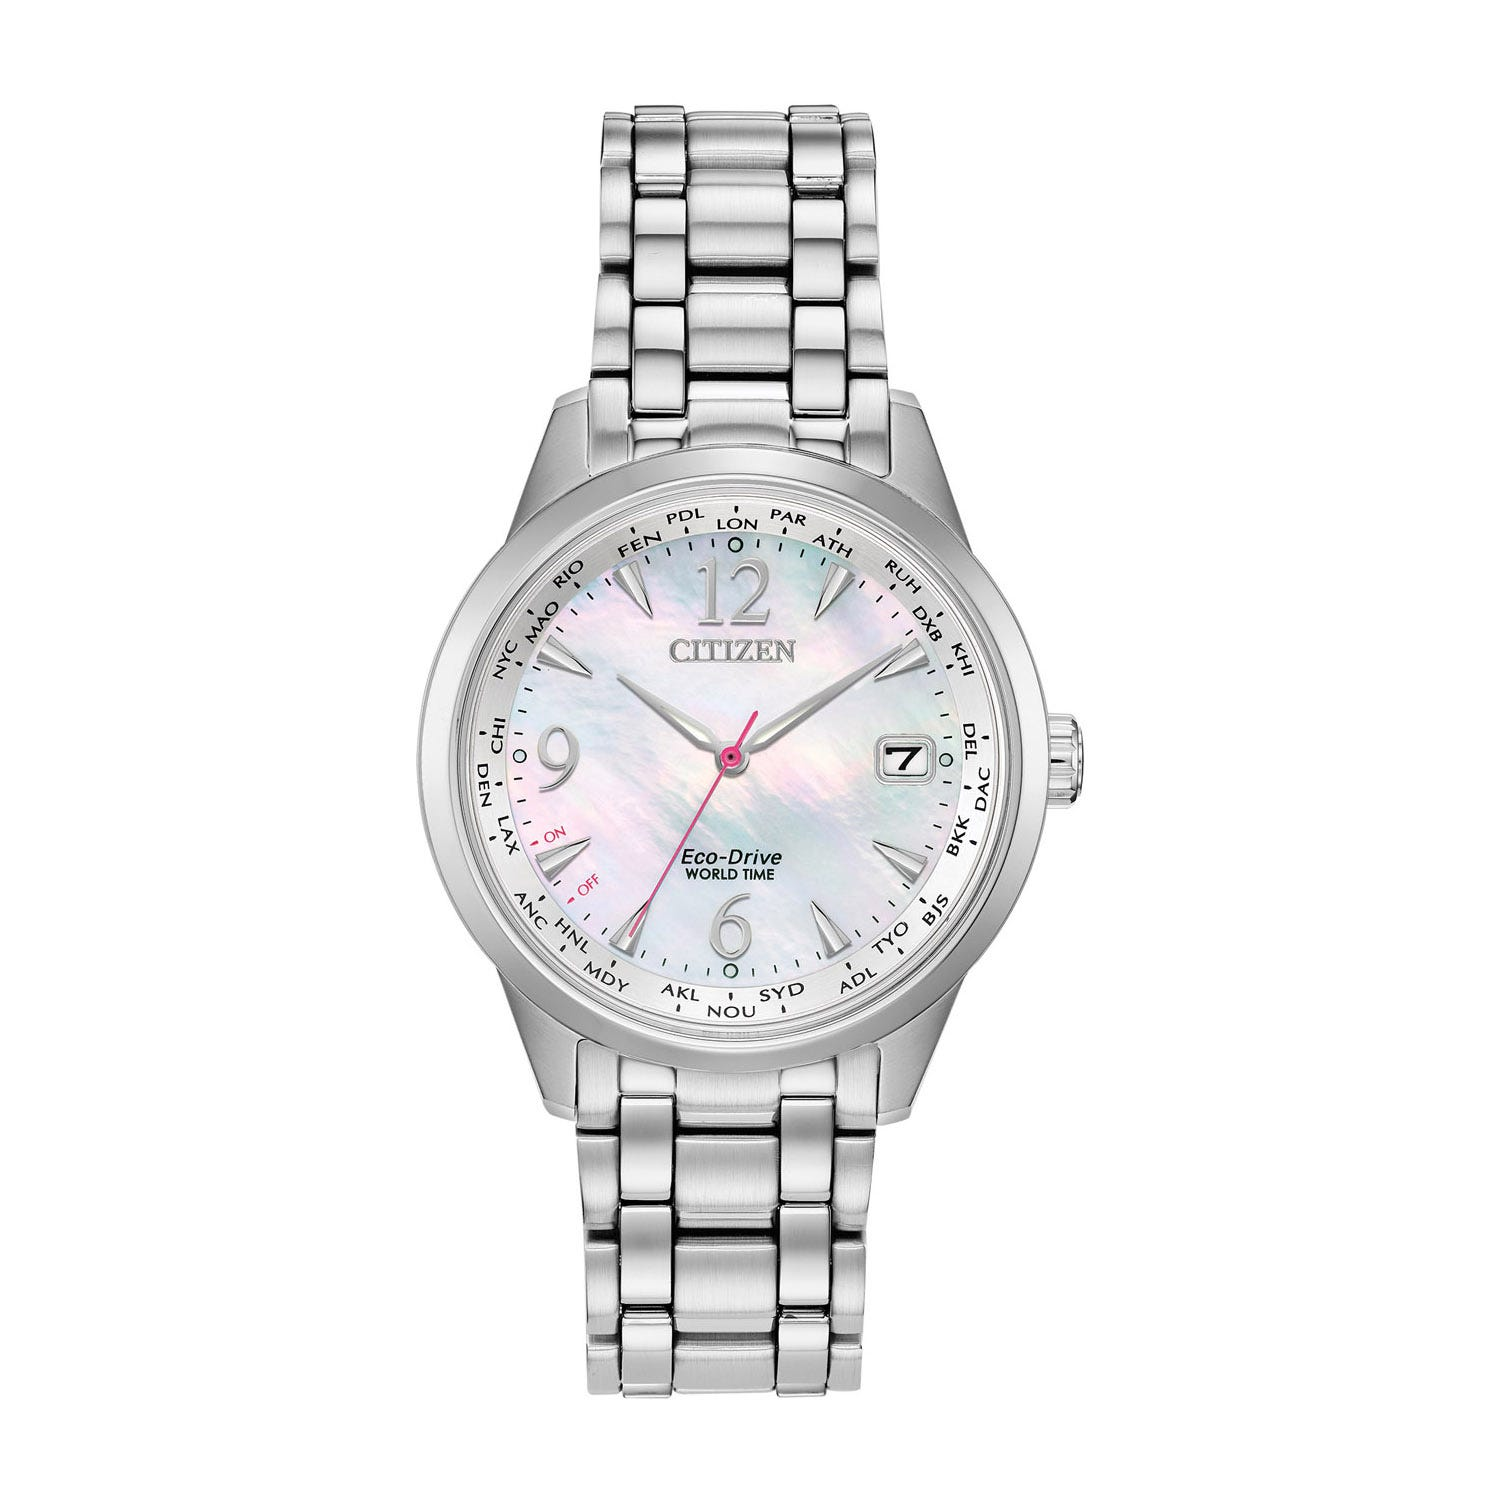 Citizen Eco World Time Perpetual Calendar Stainless Steel & Mother-of-Pearl Ladies' Watch